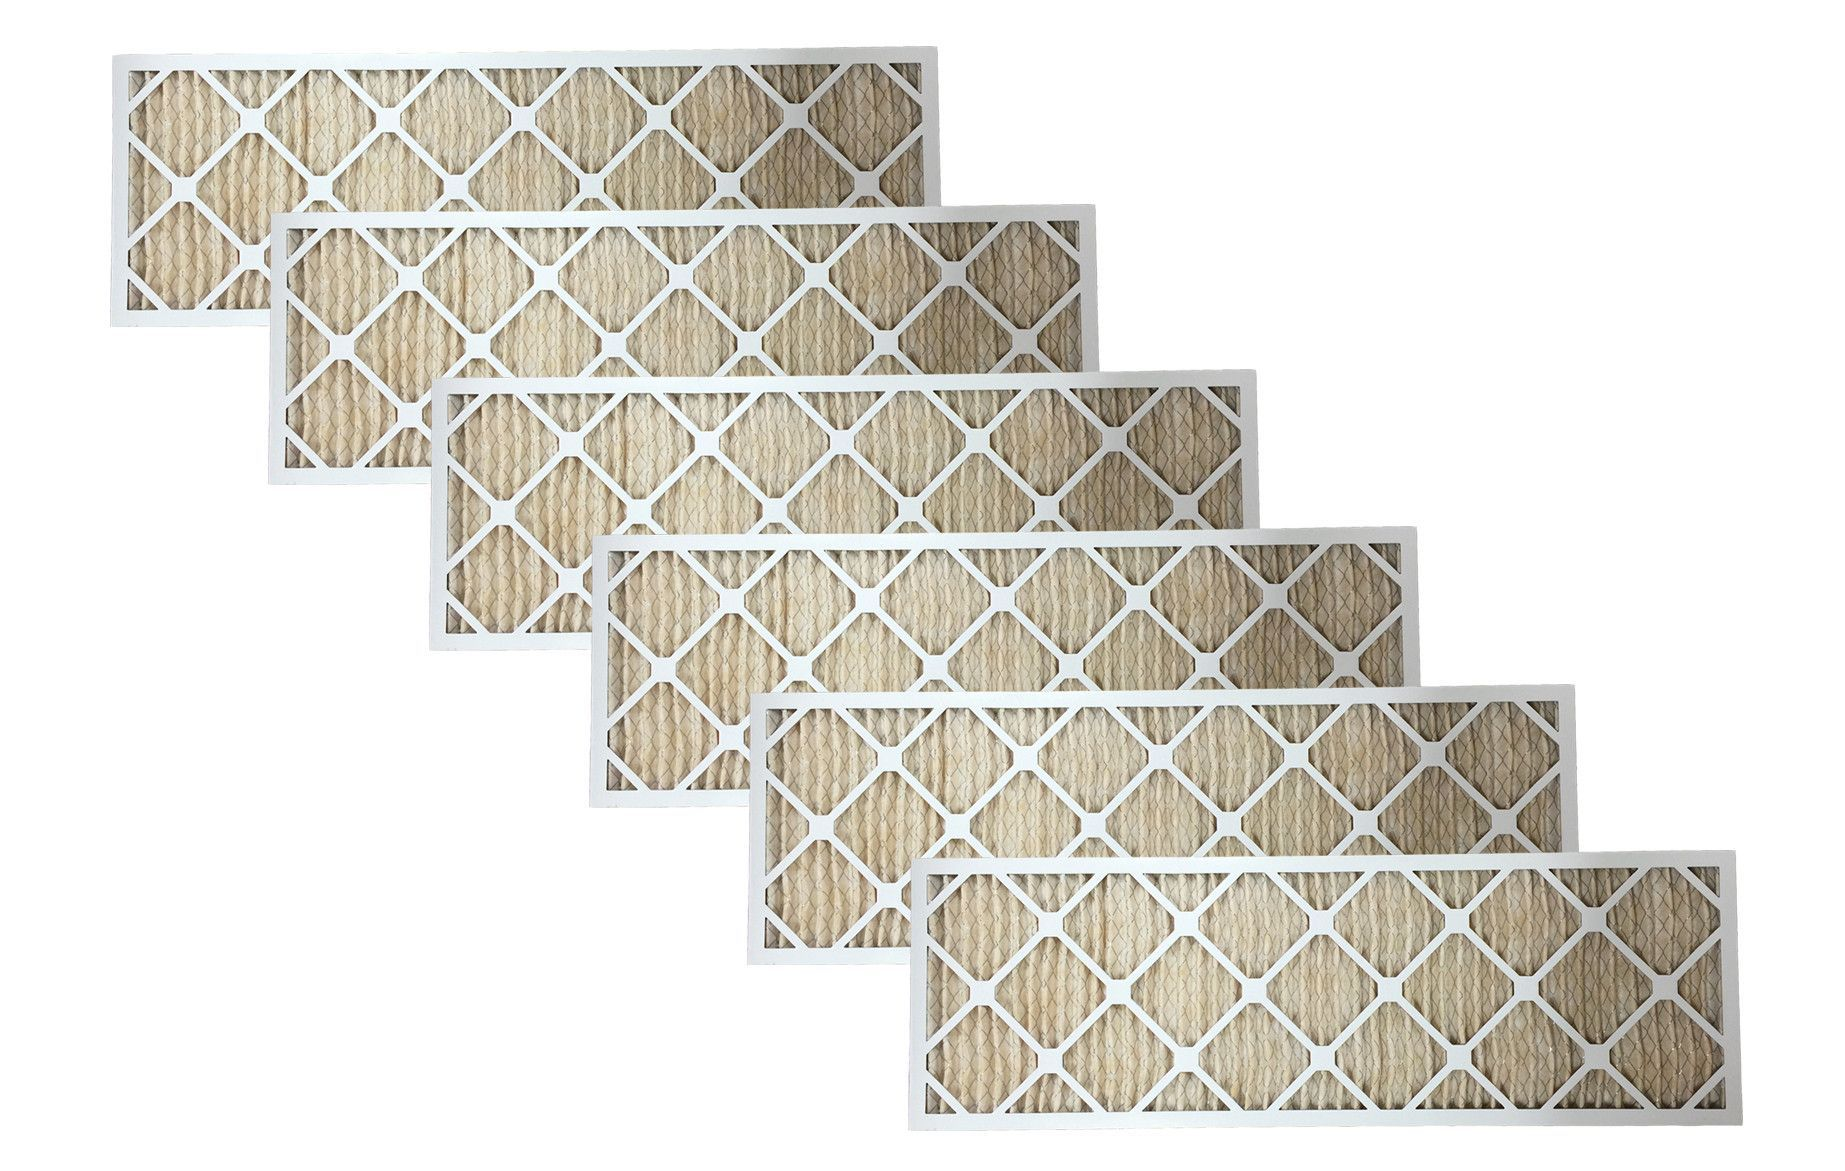 6 Furnace Filters, Rated MERV11, Approx. Size 12x36x1